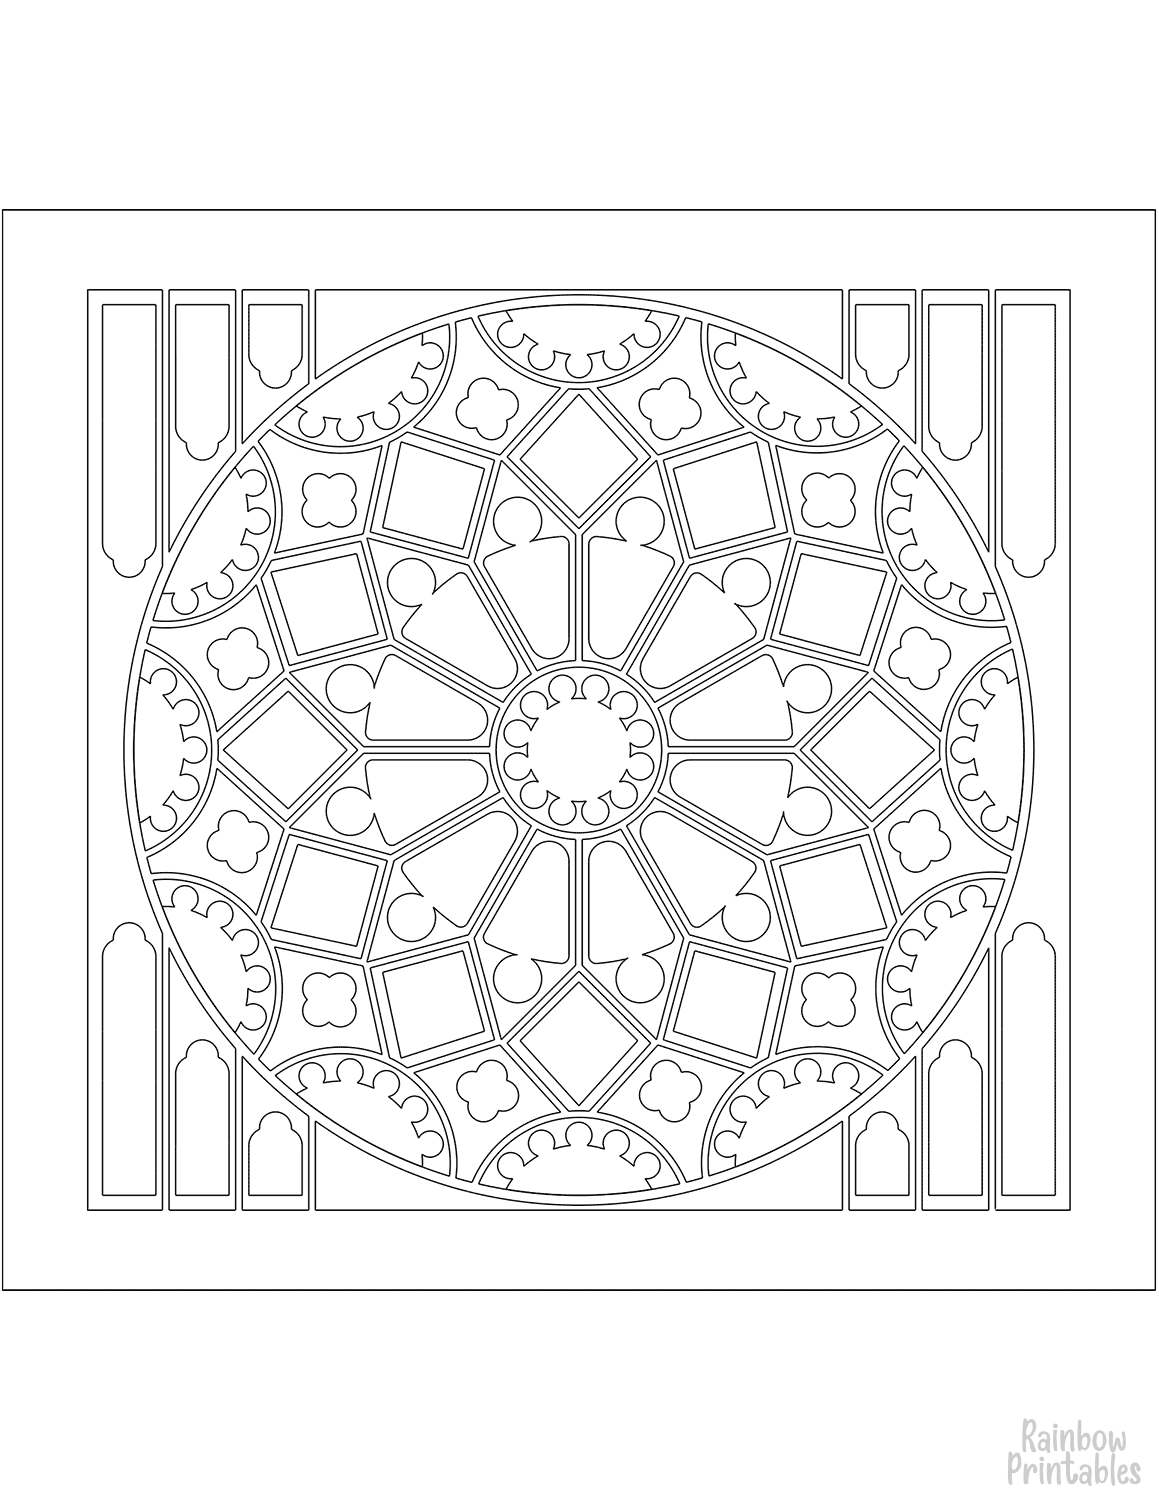 STAINED GLASS ROSE WINDOW Clipart Coloring Pages for Kids Adults Art Activities Line Art